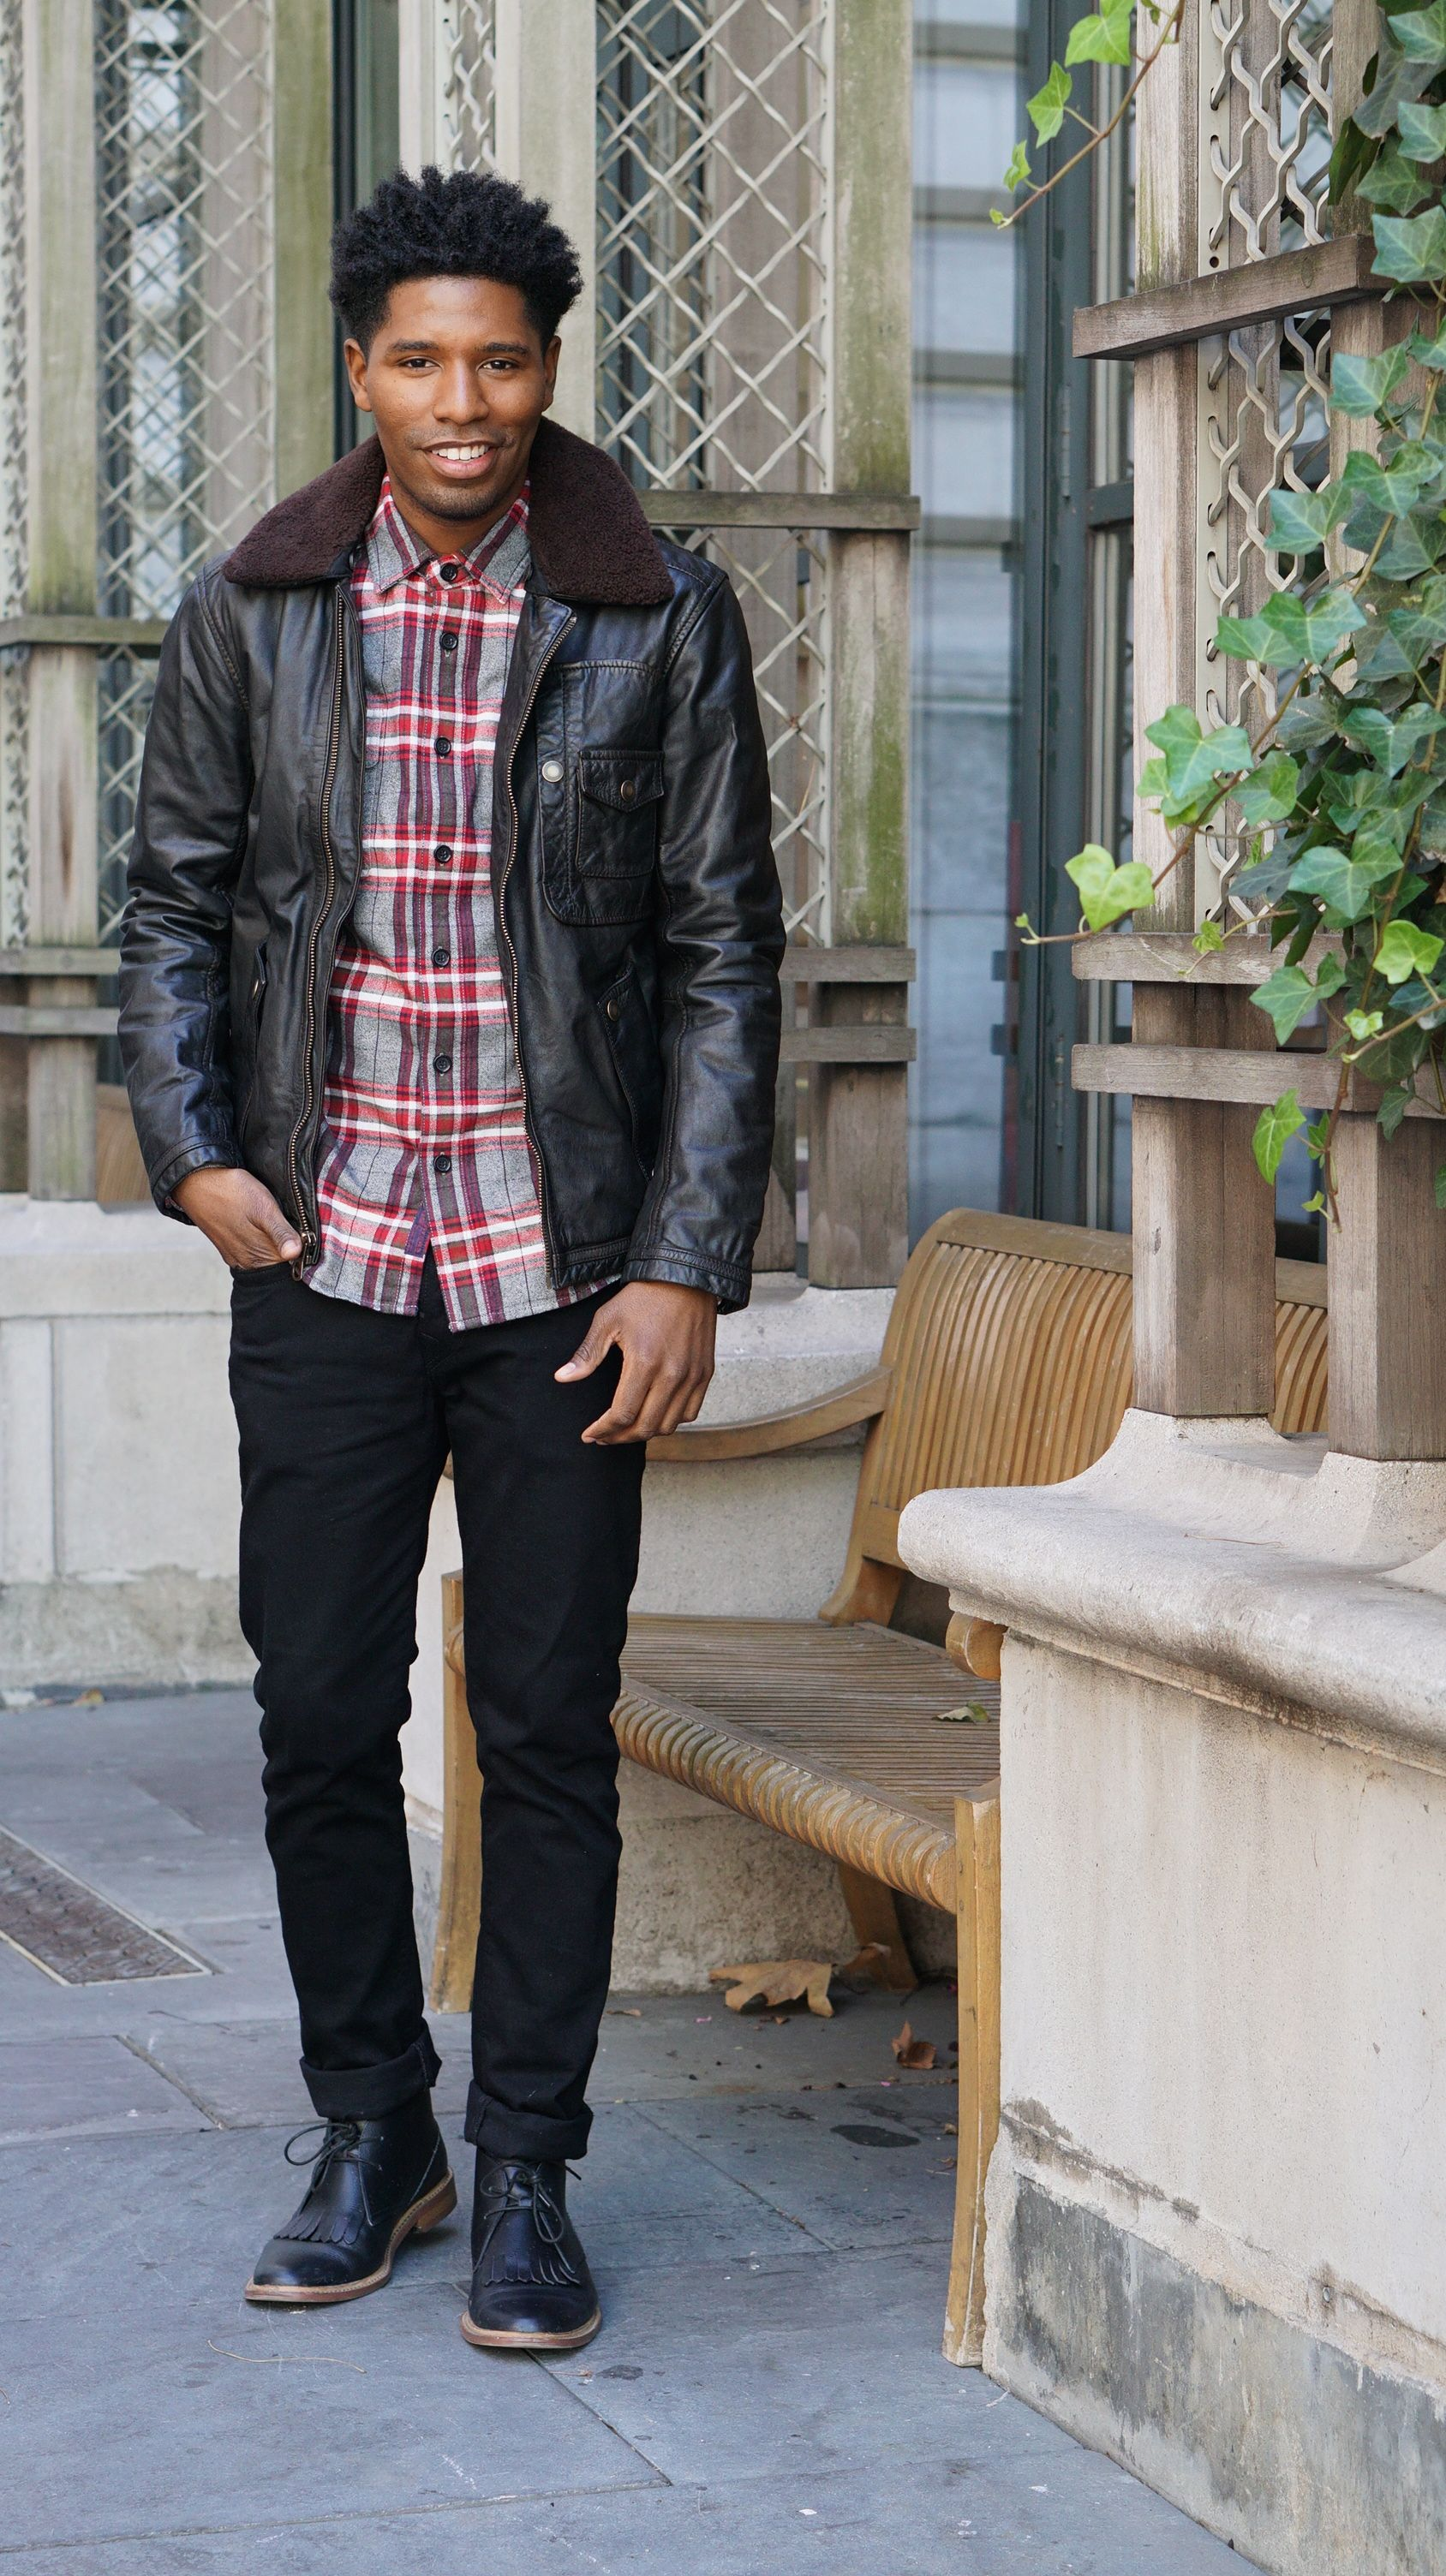 f4a0b14743 Fall outfit ideas - Leather Shearling + Red Flannel + Black Denim + Black Chukka  Boots  menswear